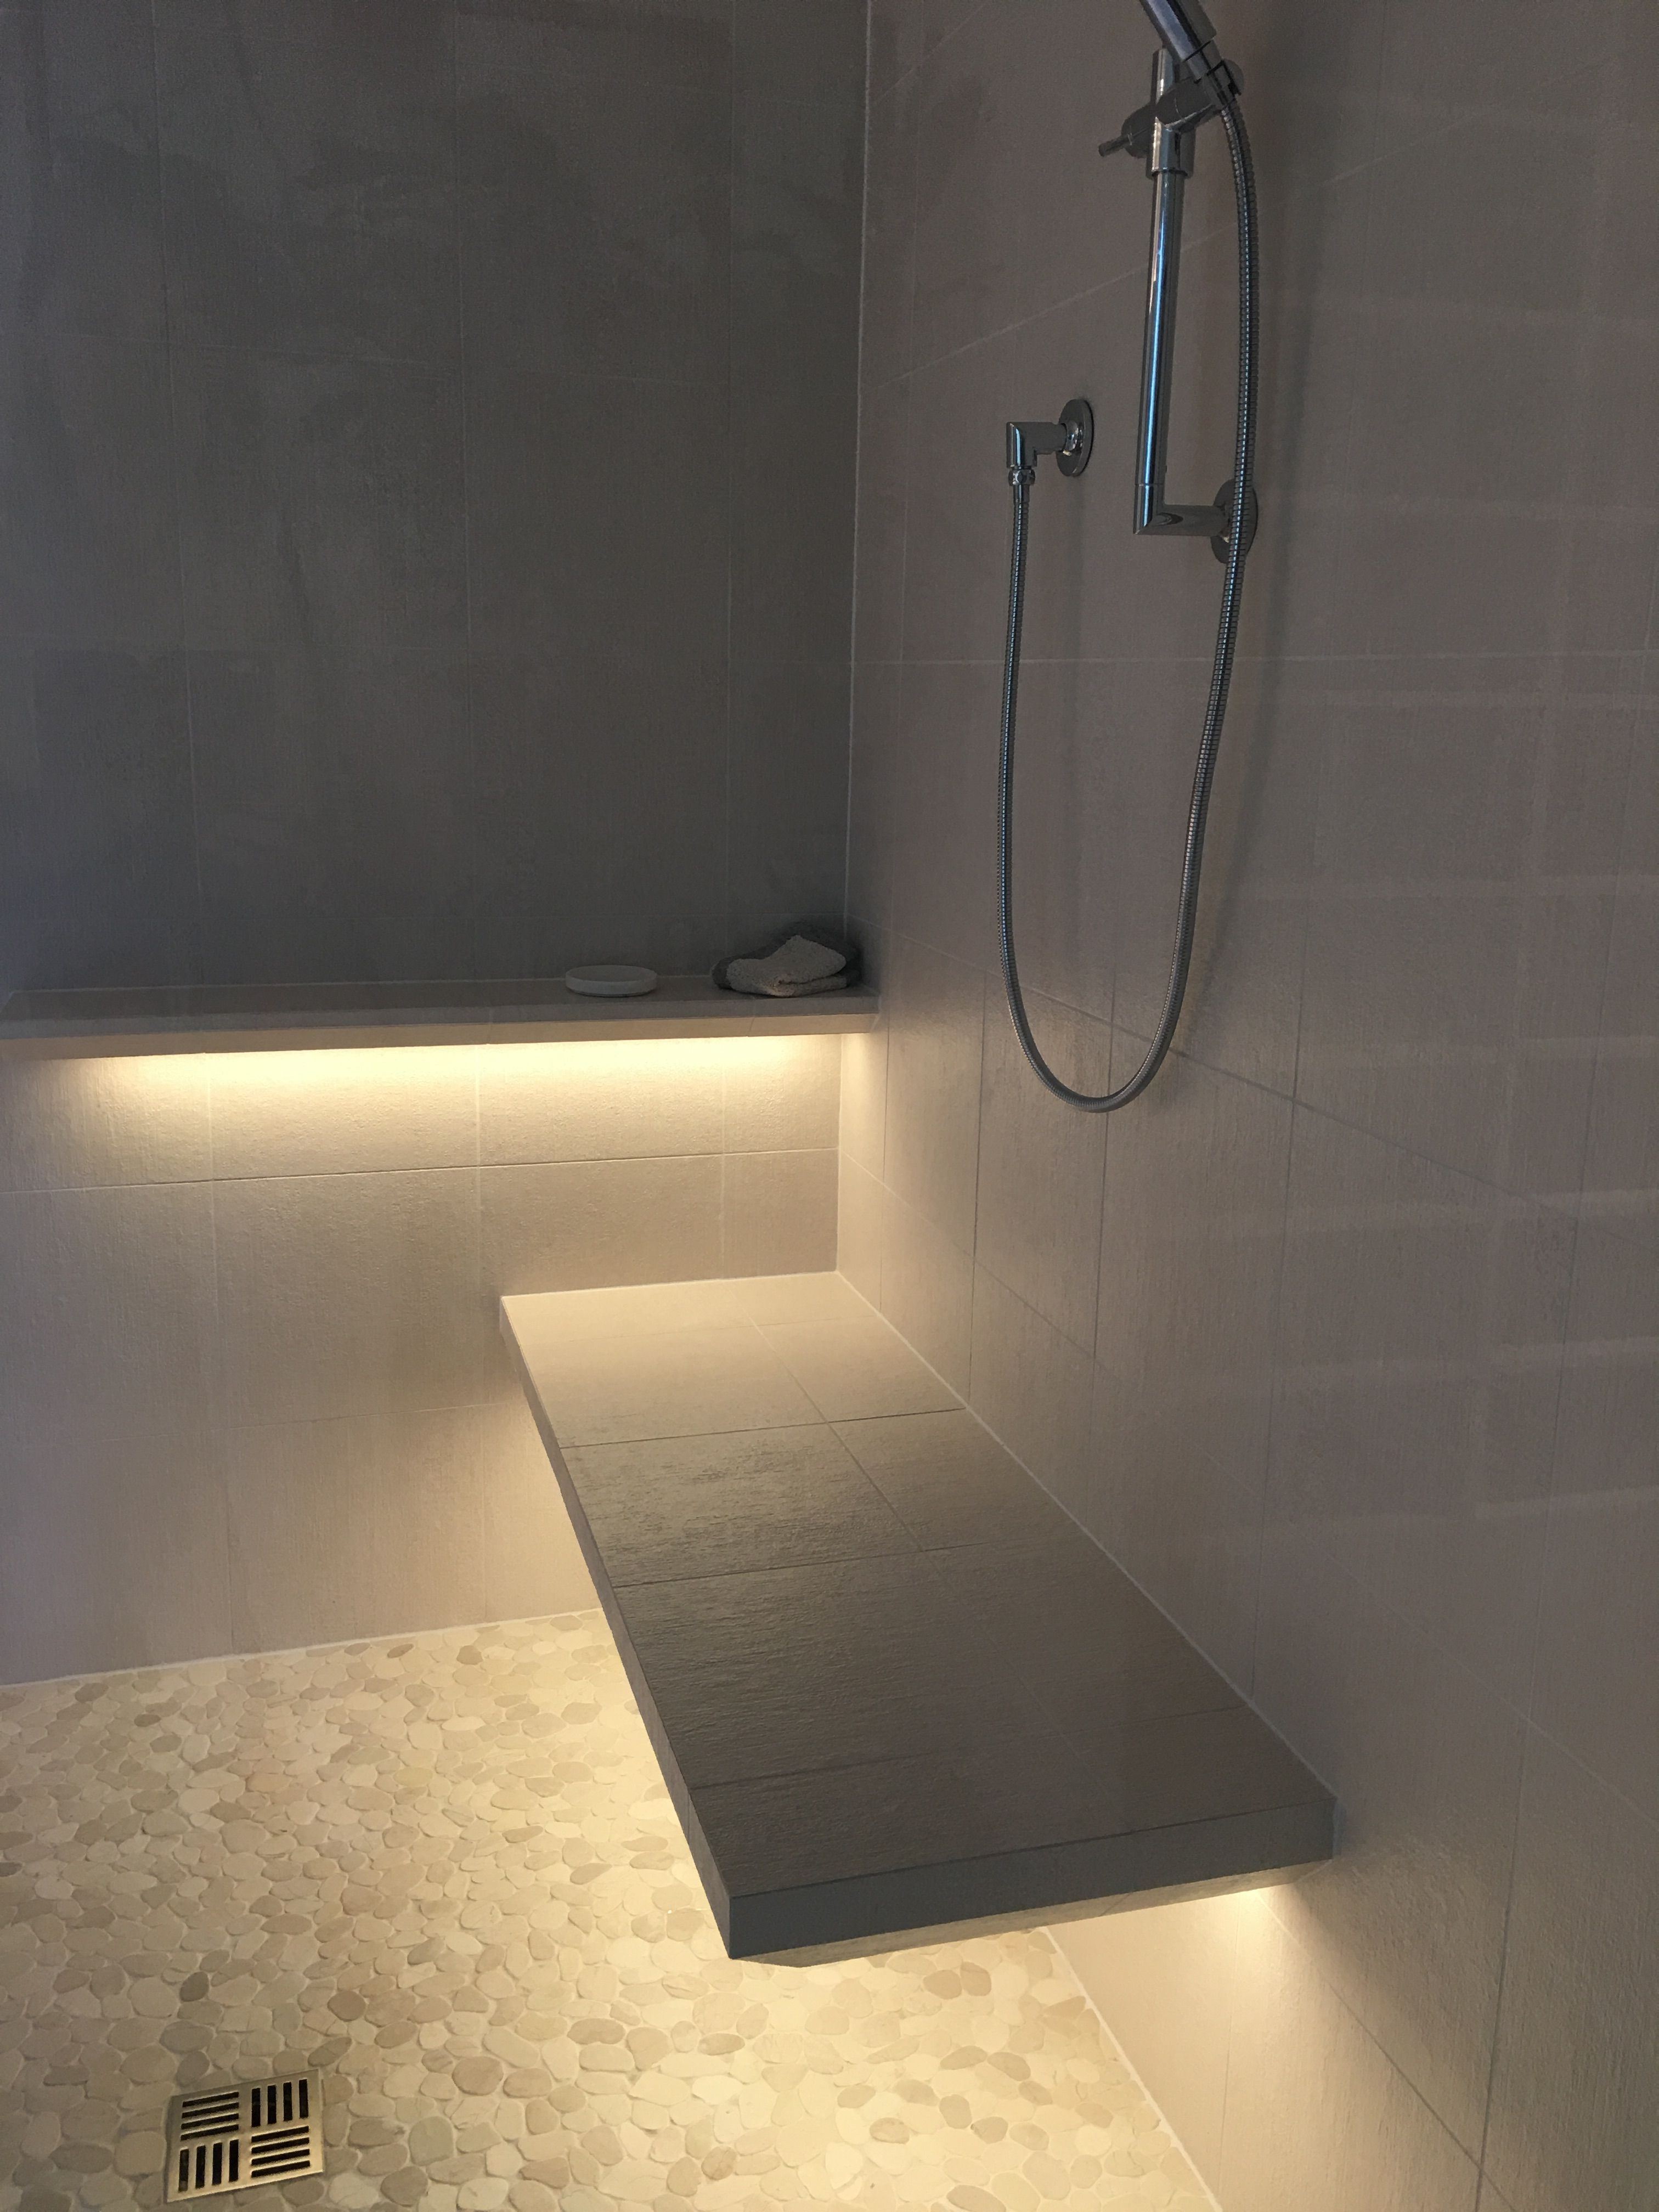 Indirect Shower Lighting Bathroom Lighting Cool Shower Lighting Shower  Residential Lighting Indirect Lighting Architectural Lighting Lighting